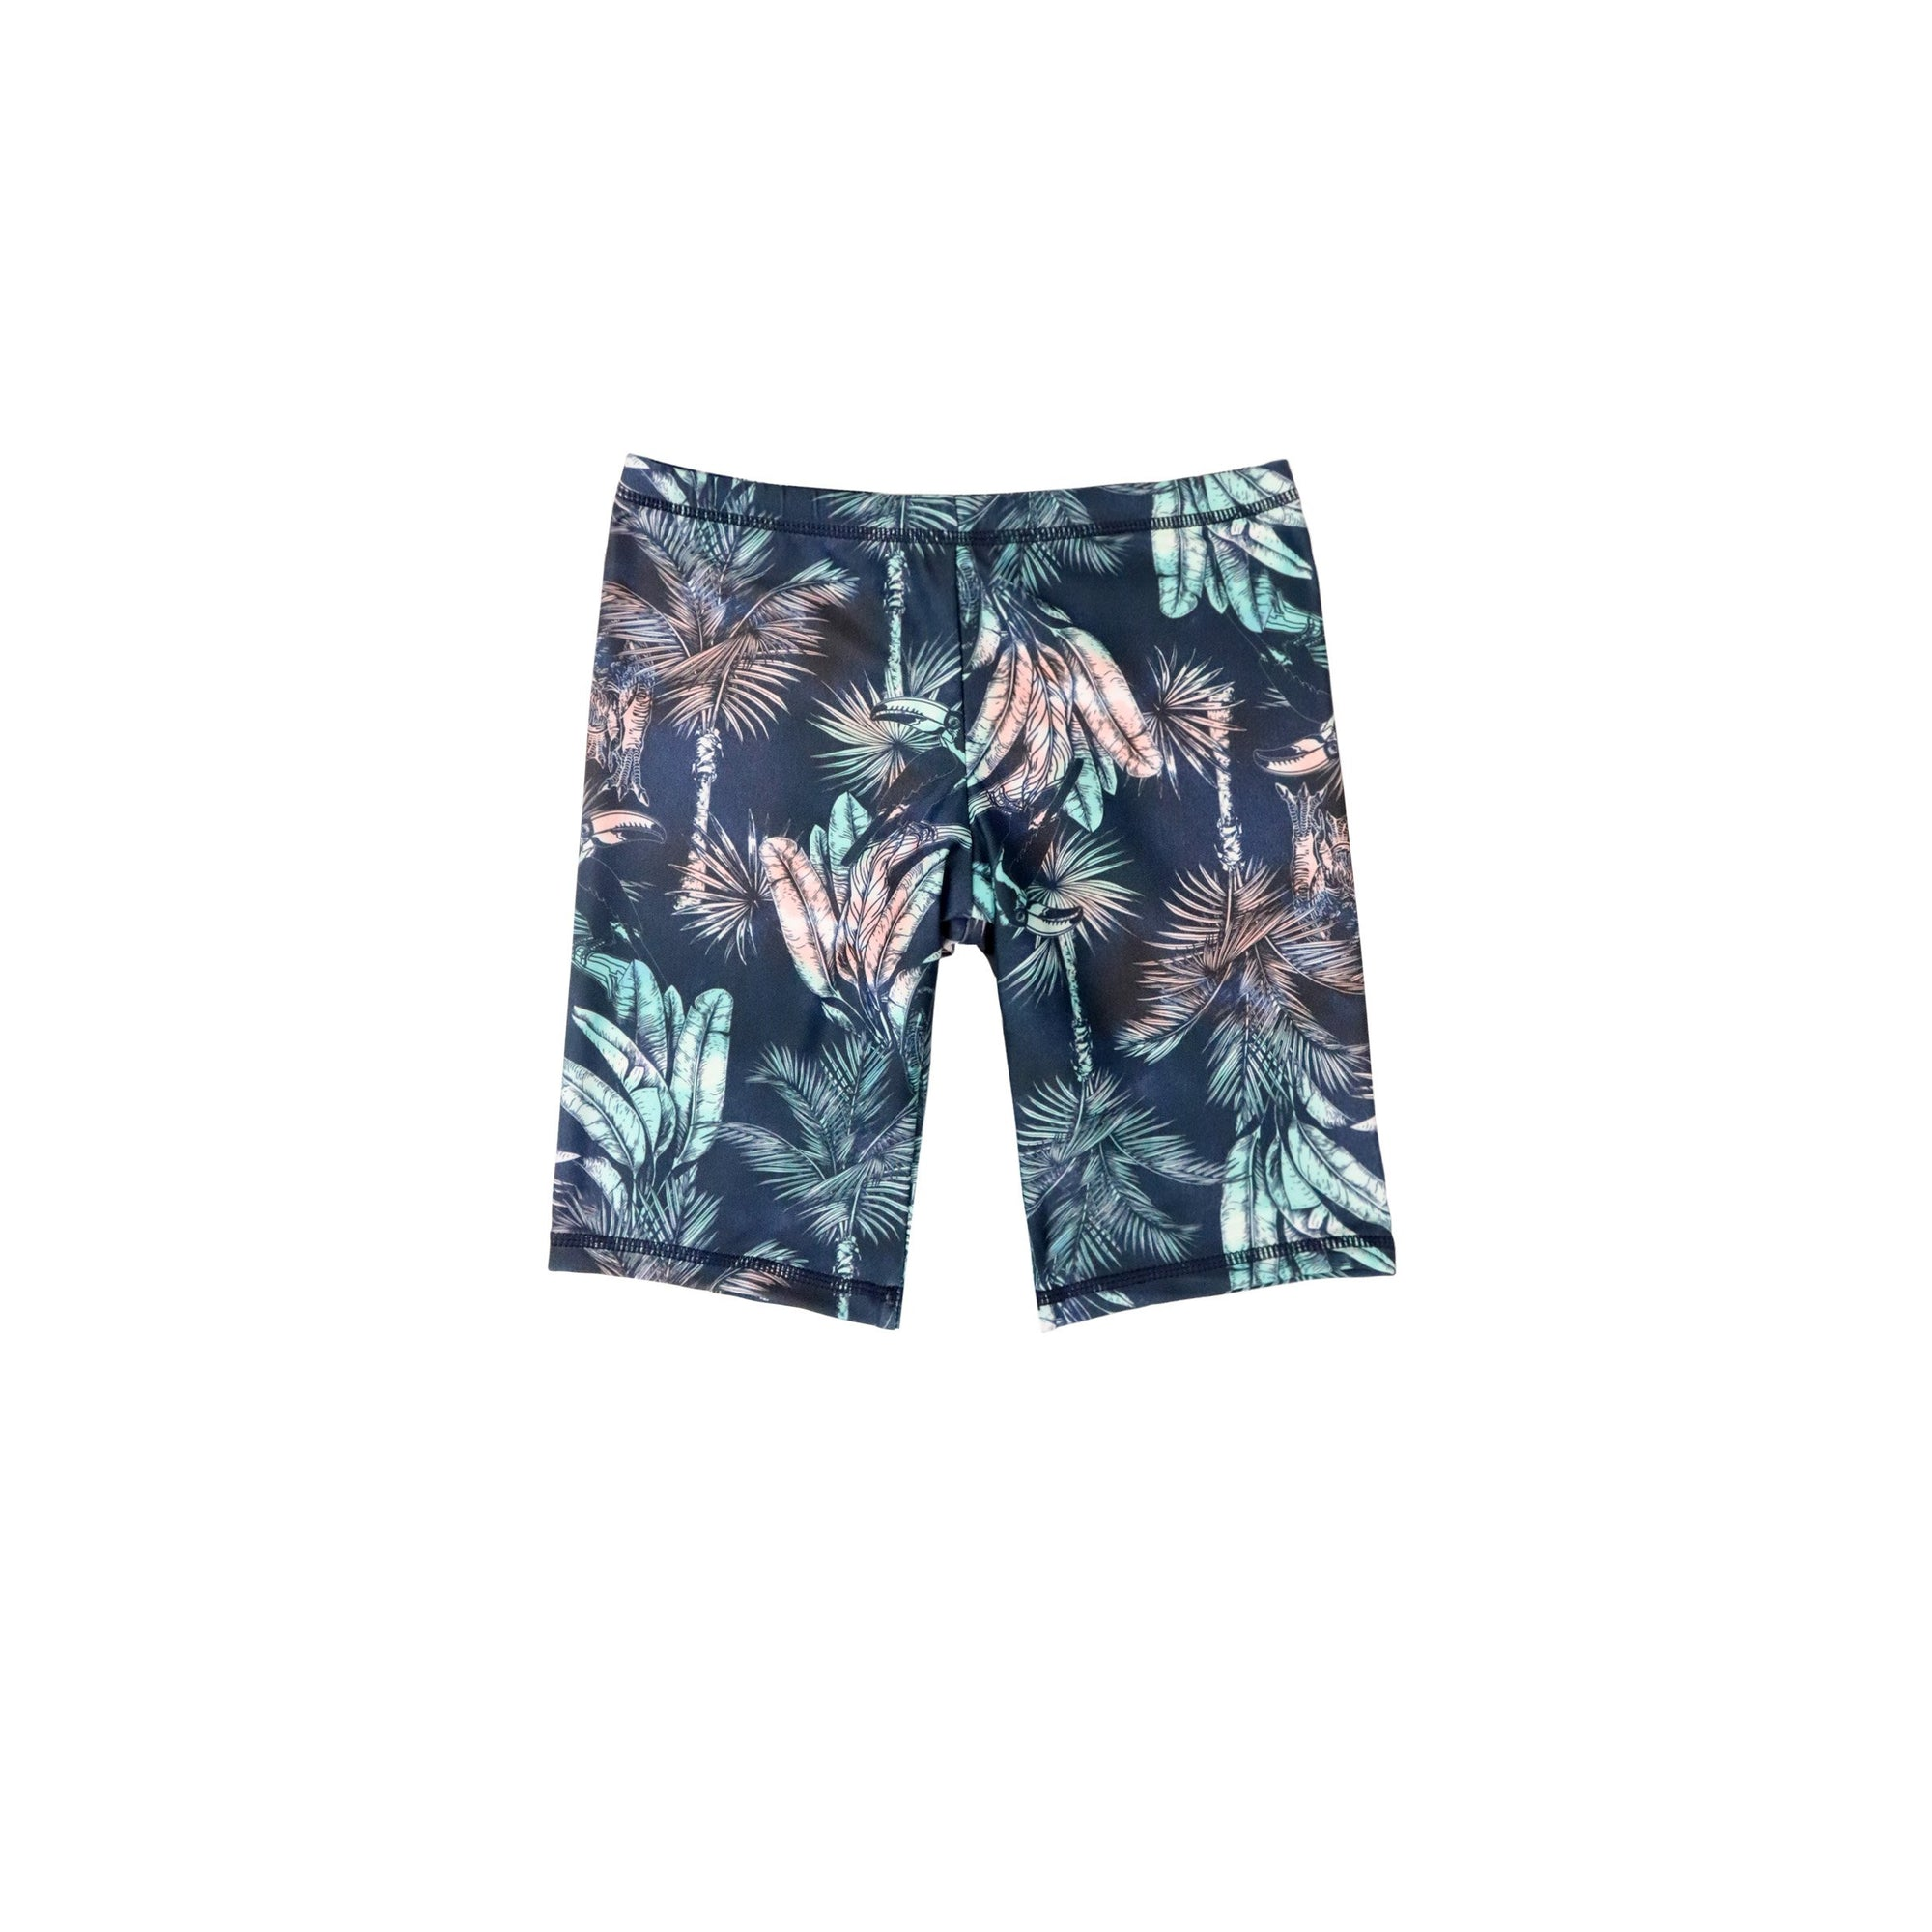 Castaway Jammer GROMS SWIMWEAR SALTY INK